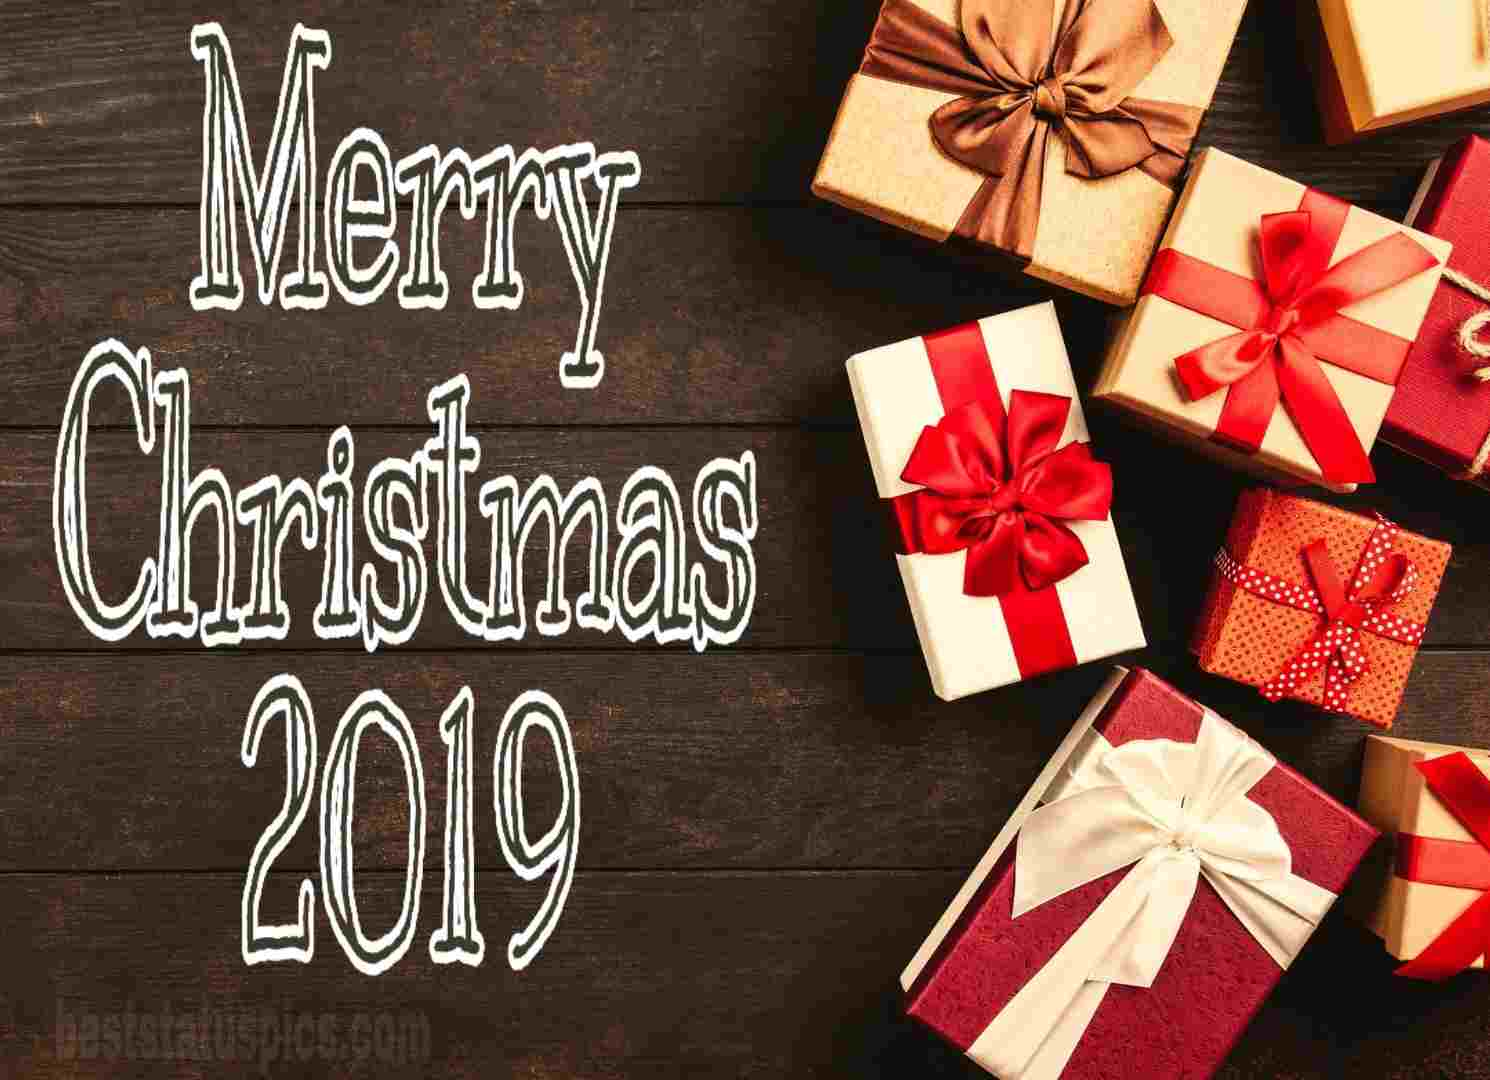 Merry Christmas wishes 2019 Whatsapp Dp Picture